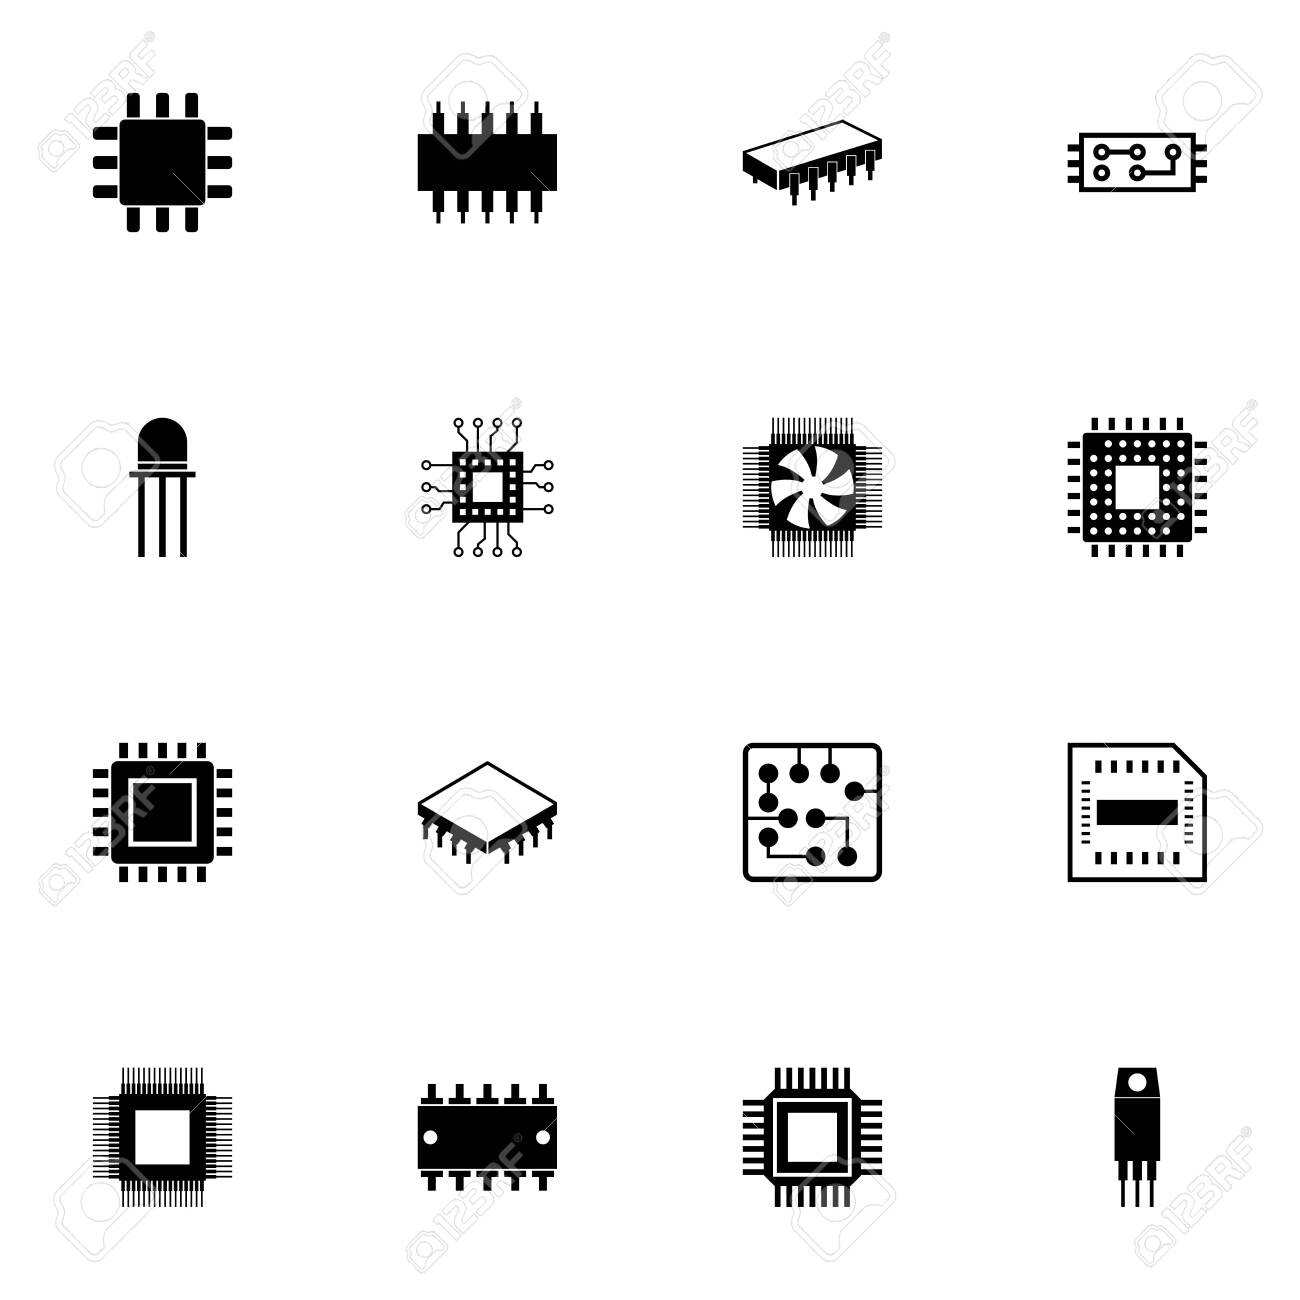 Computer Chips icon - Expand to any size - Change to any colour. Perfect Flat Vector Contains such Icons as CPU, GPU, processor, silicon chip, microchip, microcircuit, resistor, transistor, conductor - 151290619